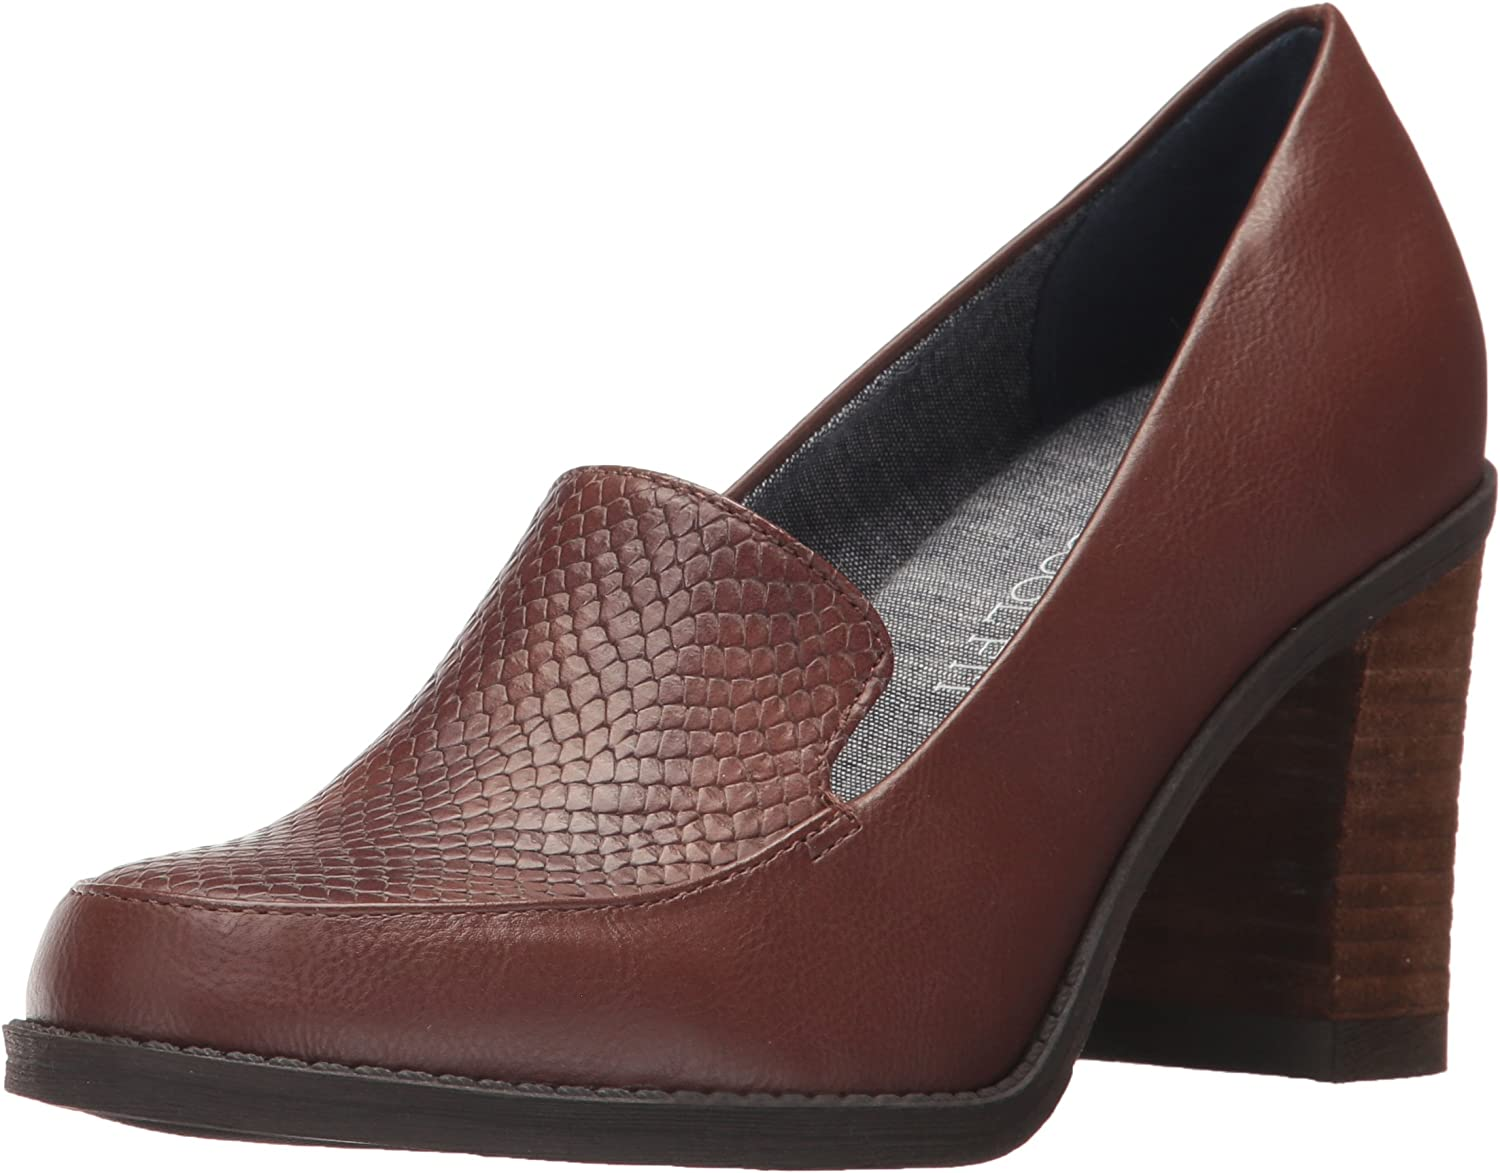 Dr. Scholl's shoes Womens Locate Slip-On Loafer